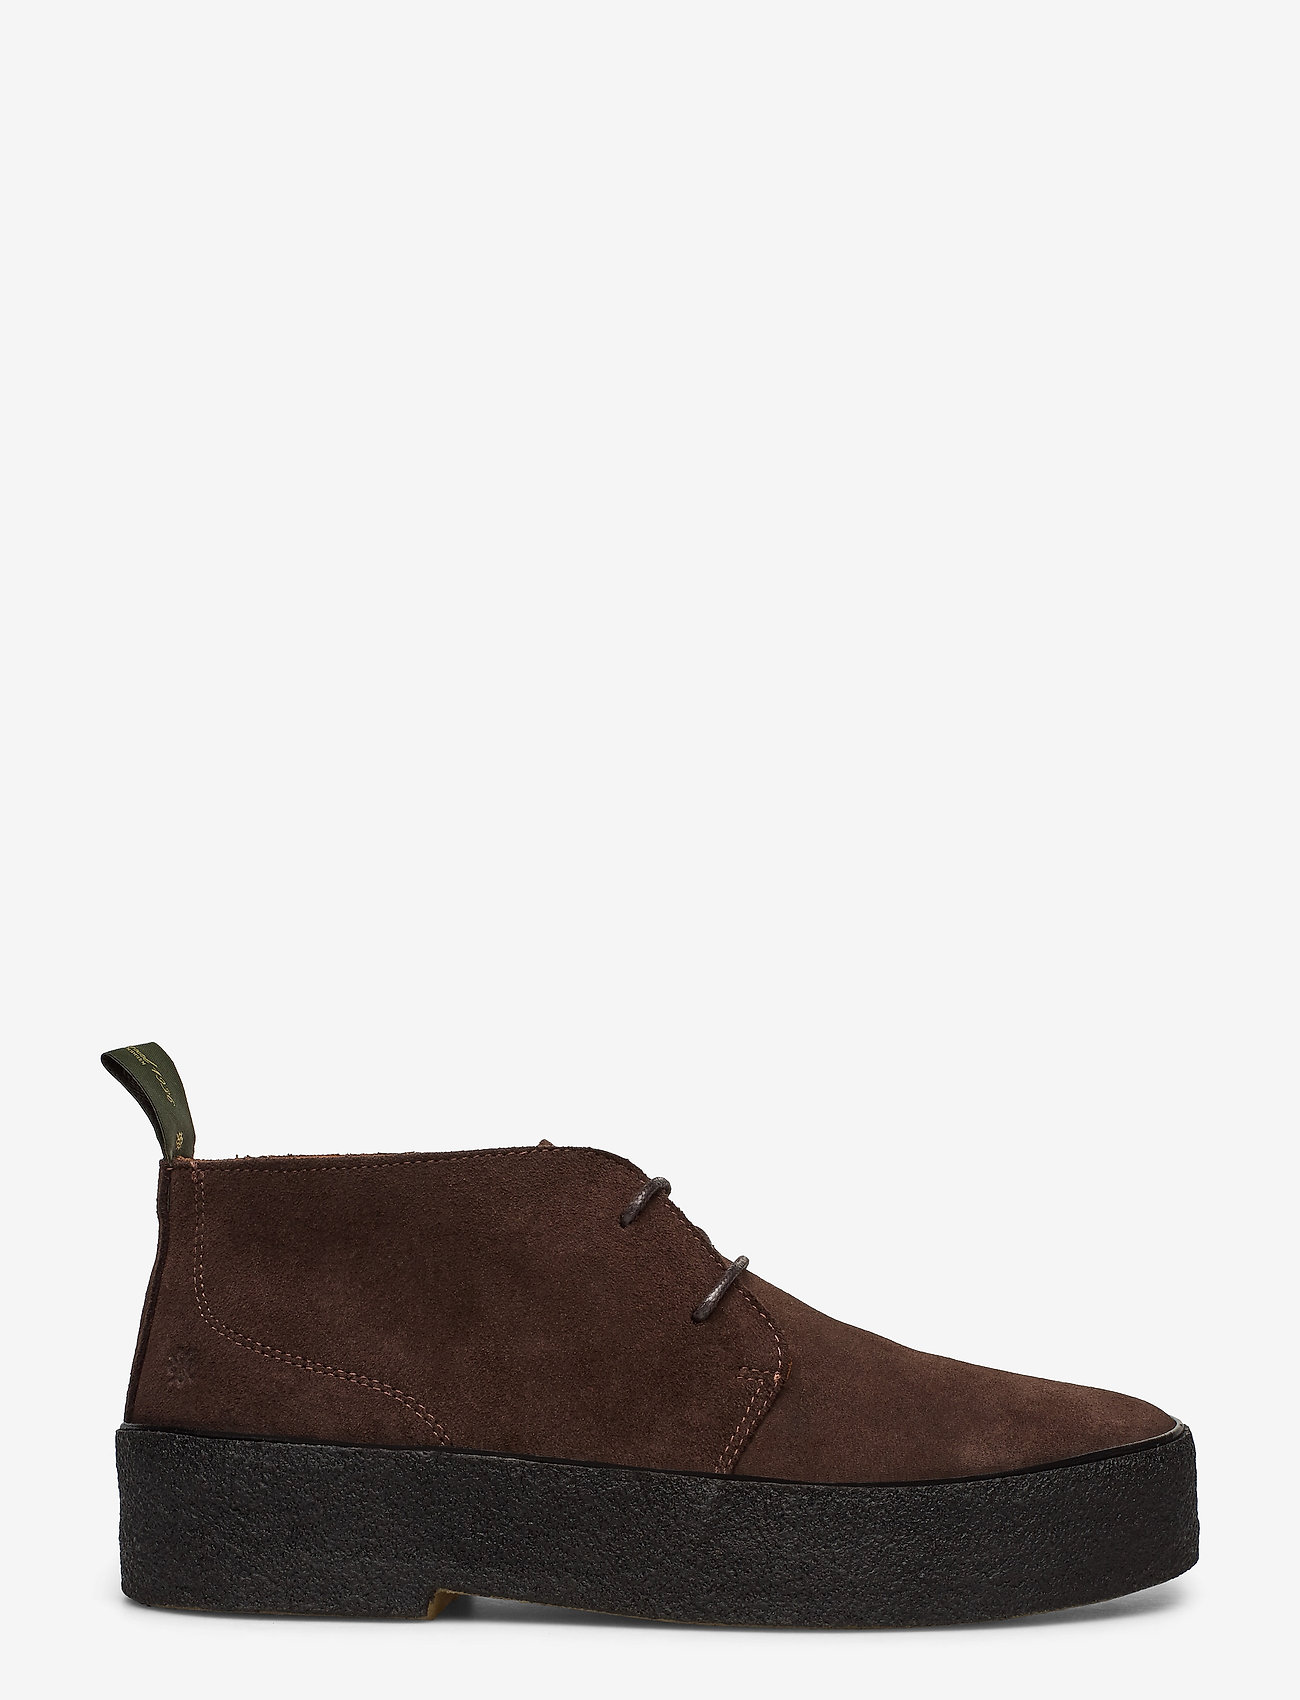 Playboy Footwear - ORG.32 - desert boots - brown - 1